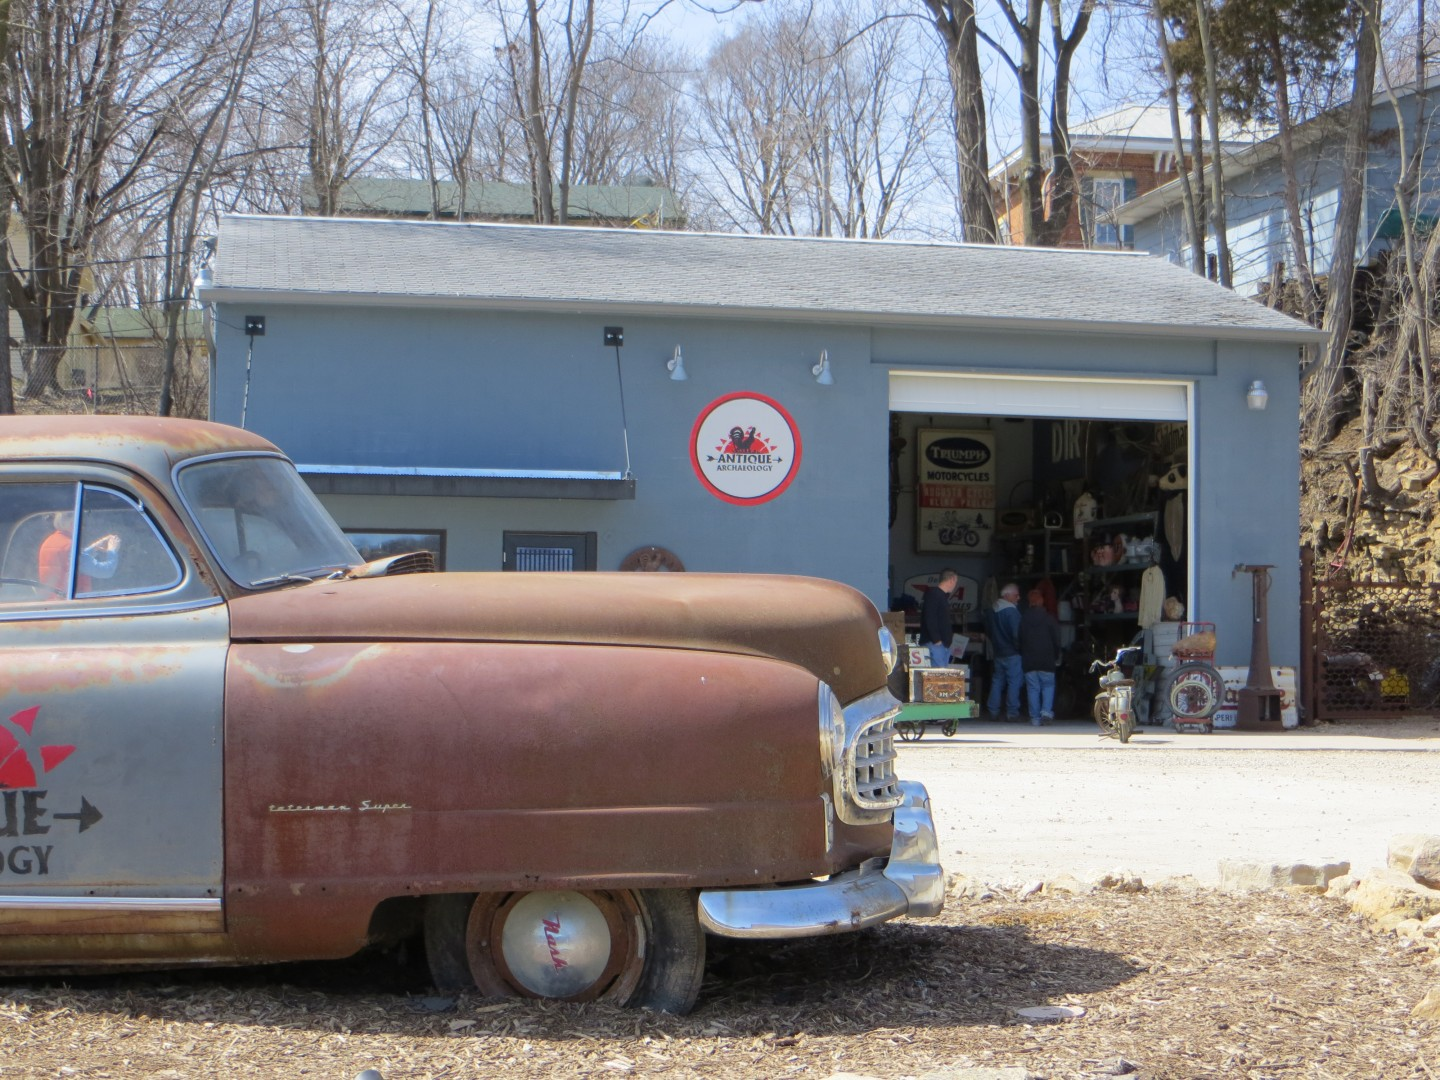 American Pickers building, Le Claire, Iowa.